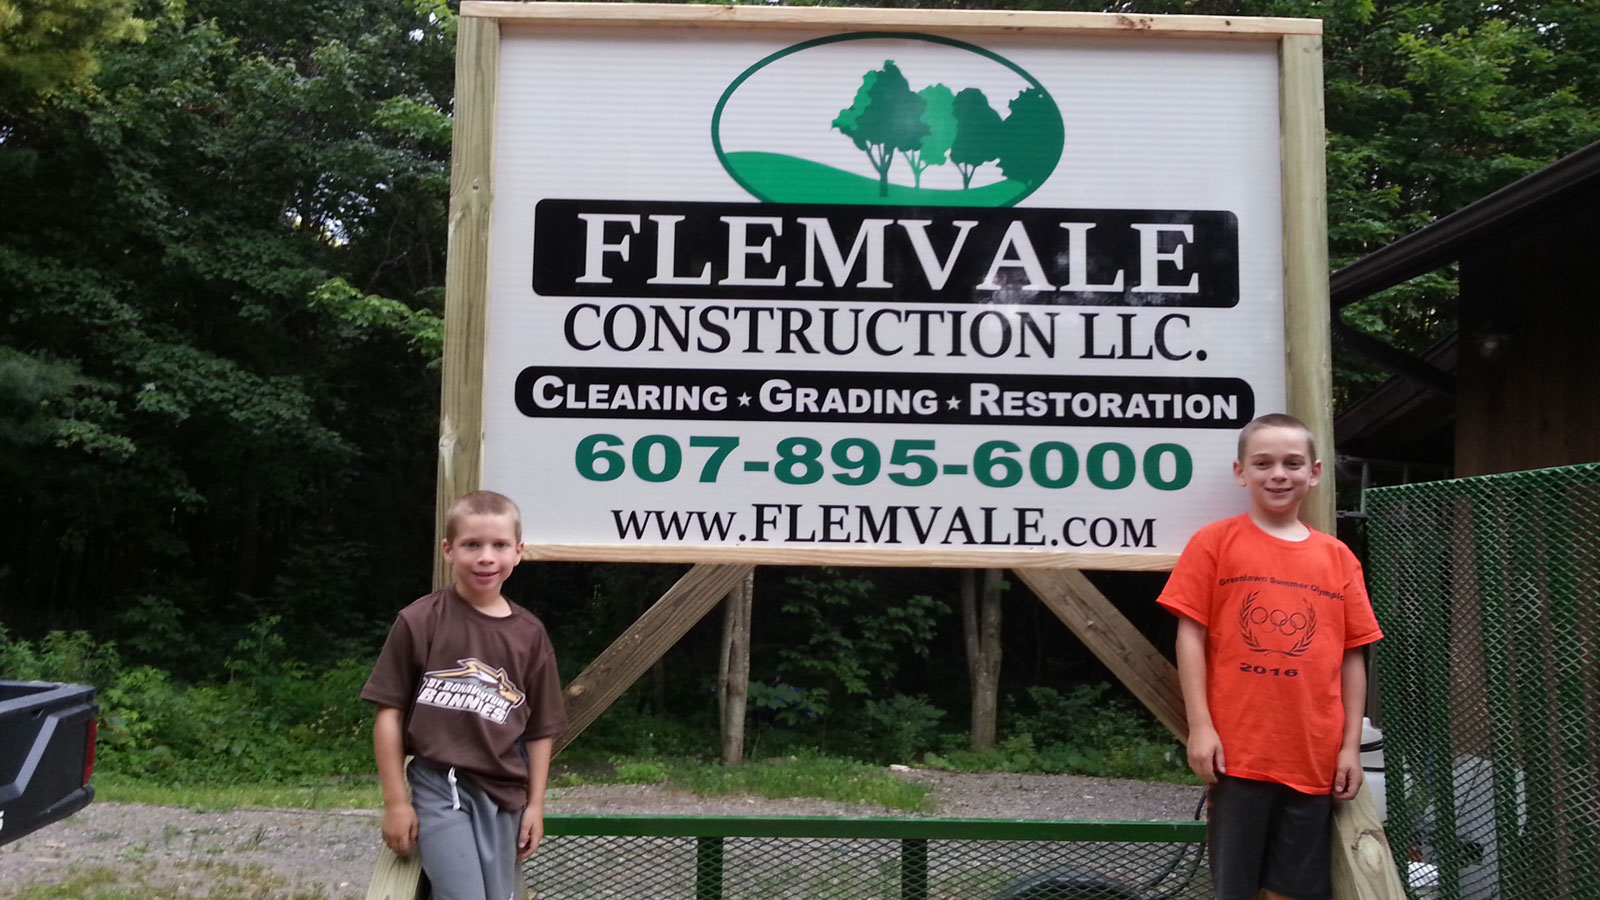 flemvale sign children - About Us